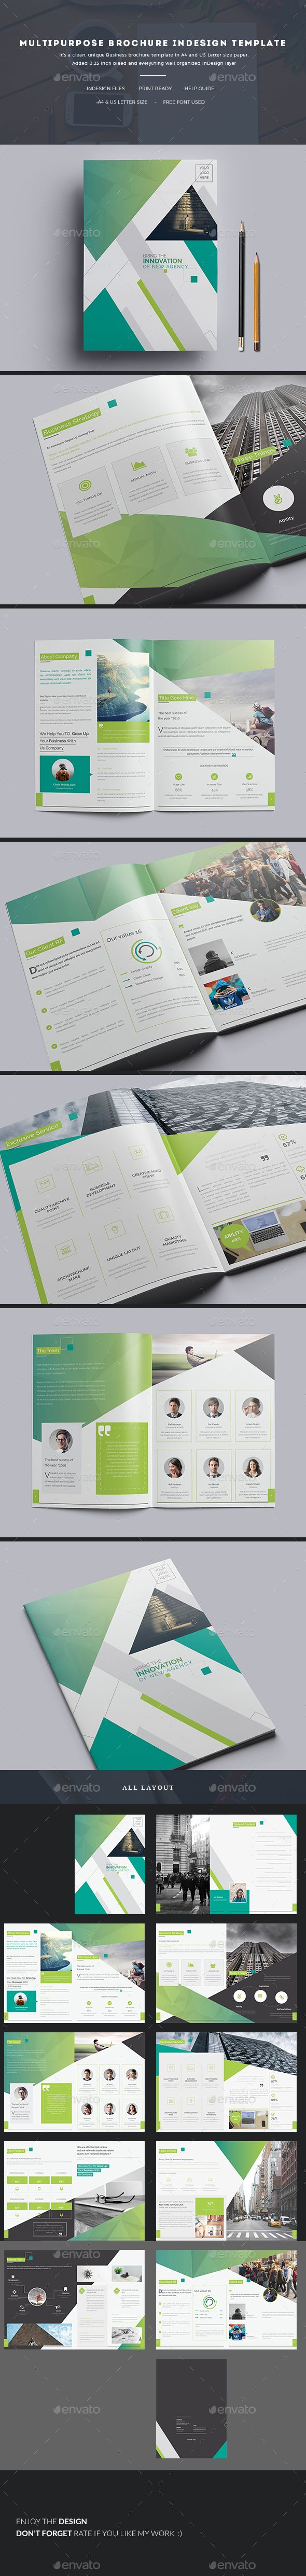 Multipurpose Brochure InDesign Template  — InDesign Template #clean #universal • Download ➝ https://graphicriver.net/item/multipurpose-brochure-indesign-template/18181920?ref=pxcr